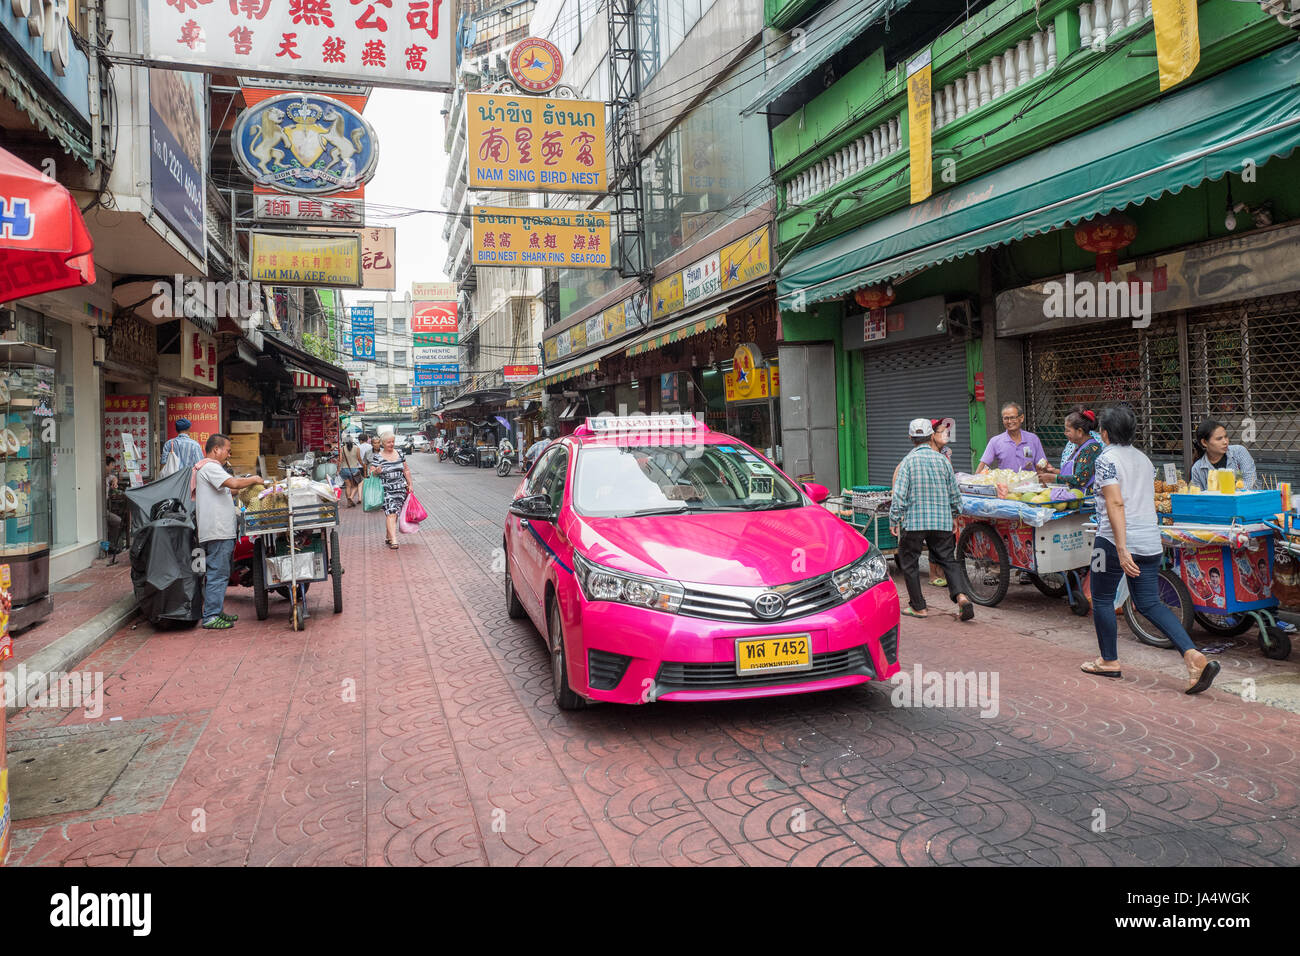 Chinatown in Bangkok. Chinatown is a major tourist attraction in Bangkok famous for its markets and gold shops. - Stock Image